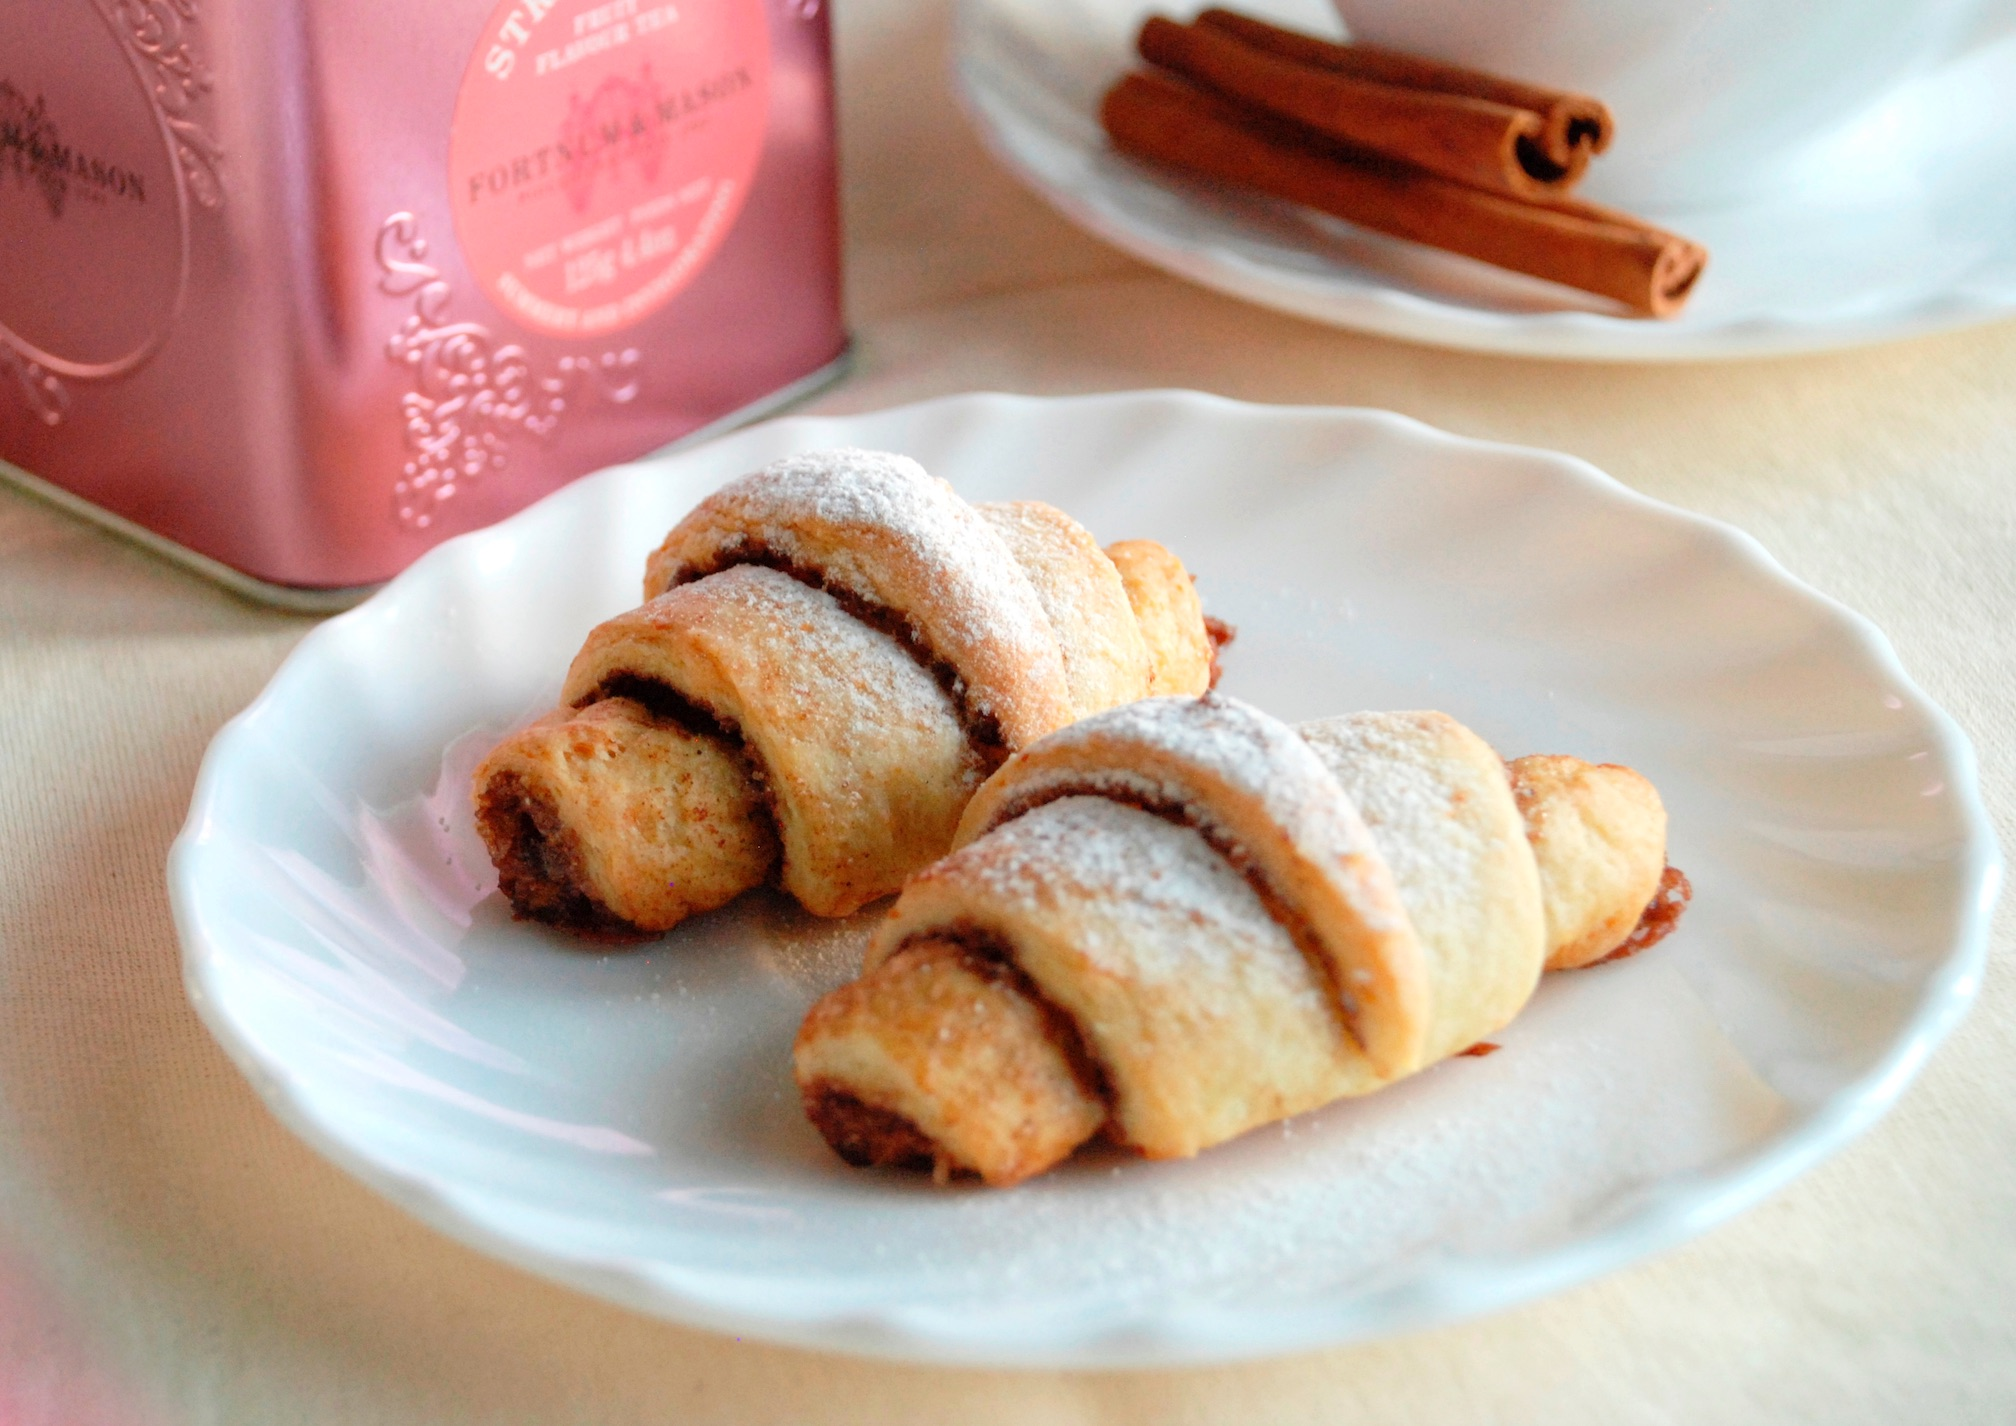 Cottage Cheese Crescent Roll with Cocoa and Cinnamon